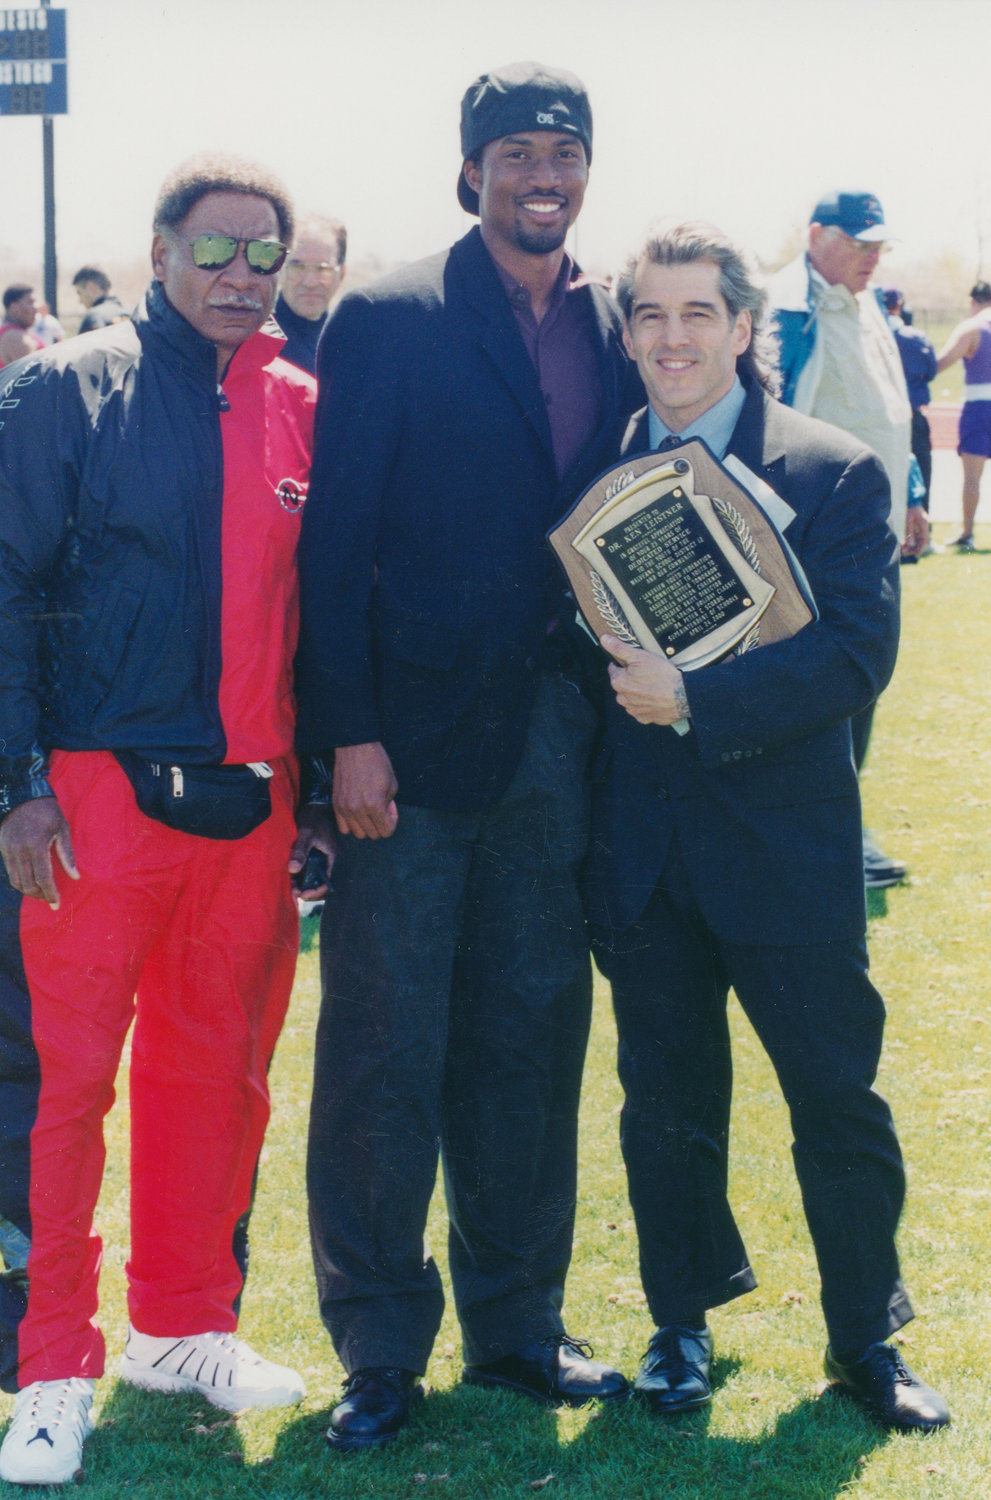 Late East Rockaway resident Dr. Ken Leistner, right, who died suddenly on April 6, is remembered for training others to be the best they could be. Above, Leistner with Derrick Adkins, the 1996 Olympic gold medalist in the 400-meter hurdles, center, and Lakeview Youth Federation co-founder Charlie Nanton.